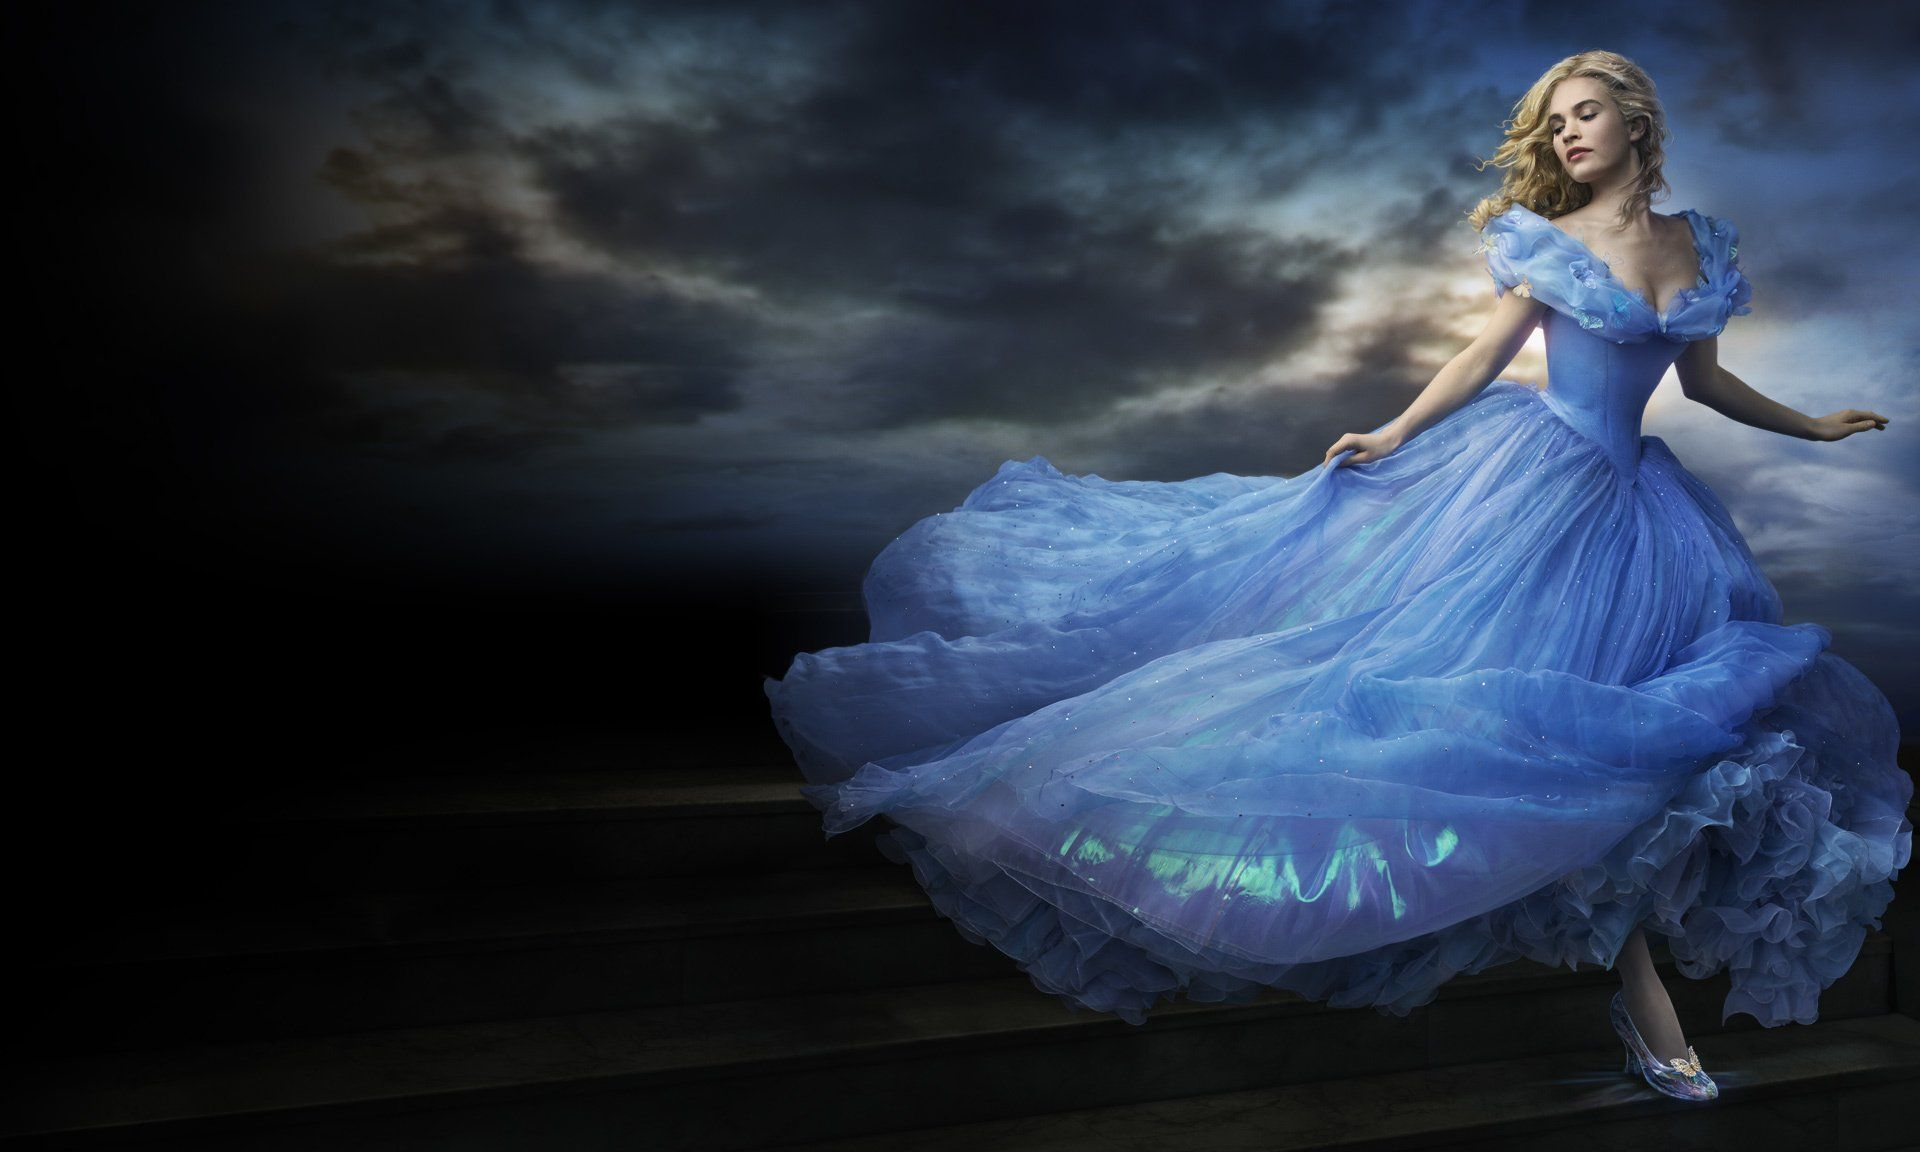 Collection of cinderella wallpaper on hdwallpapers 19201200 pics of collection of cinderella wallpaper on hdwallpapers 19201200 pics of cinderella wallpapers 50 wallpapers adorable wallpapers thecheapjerseys Gallery